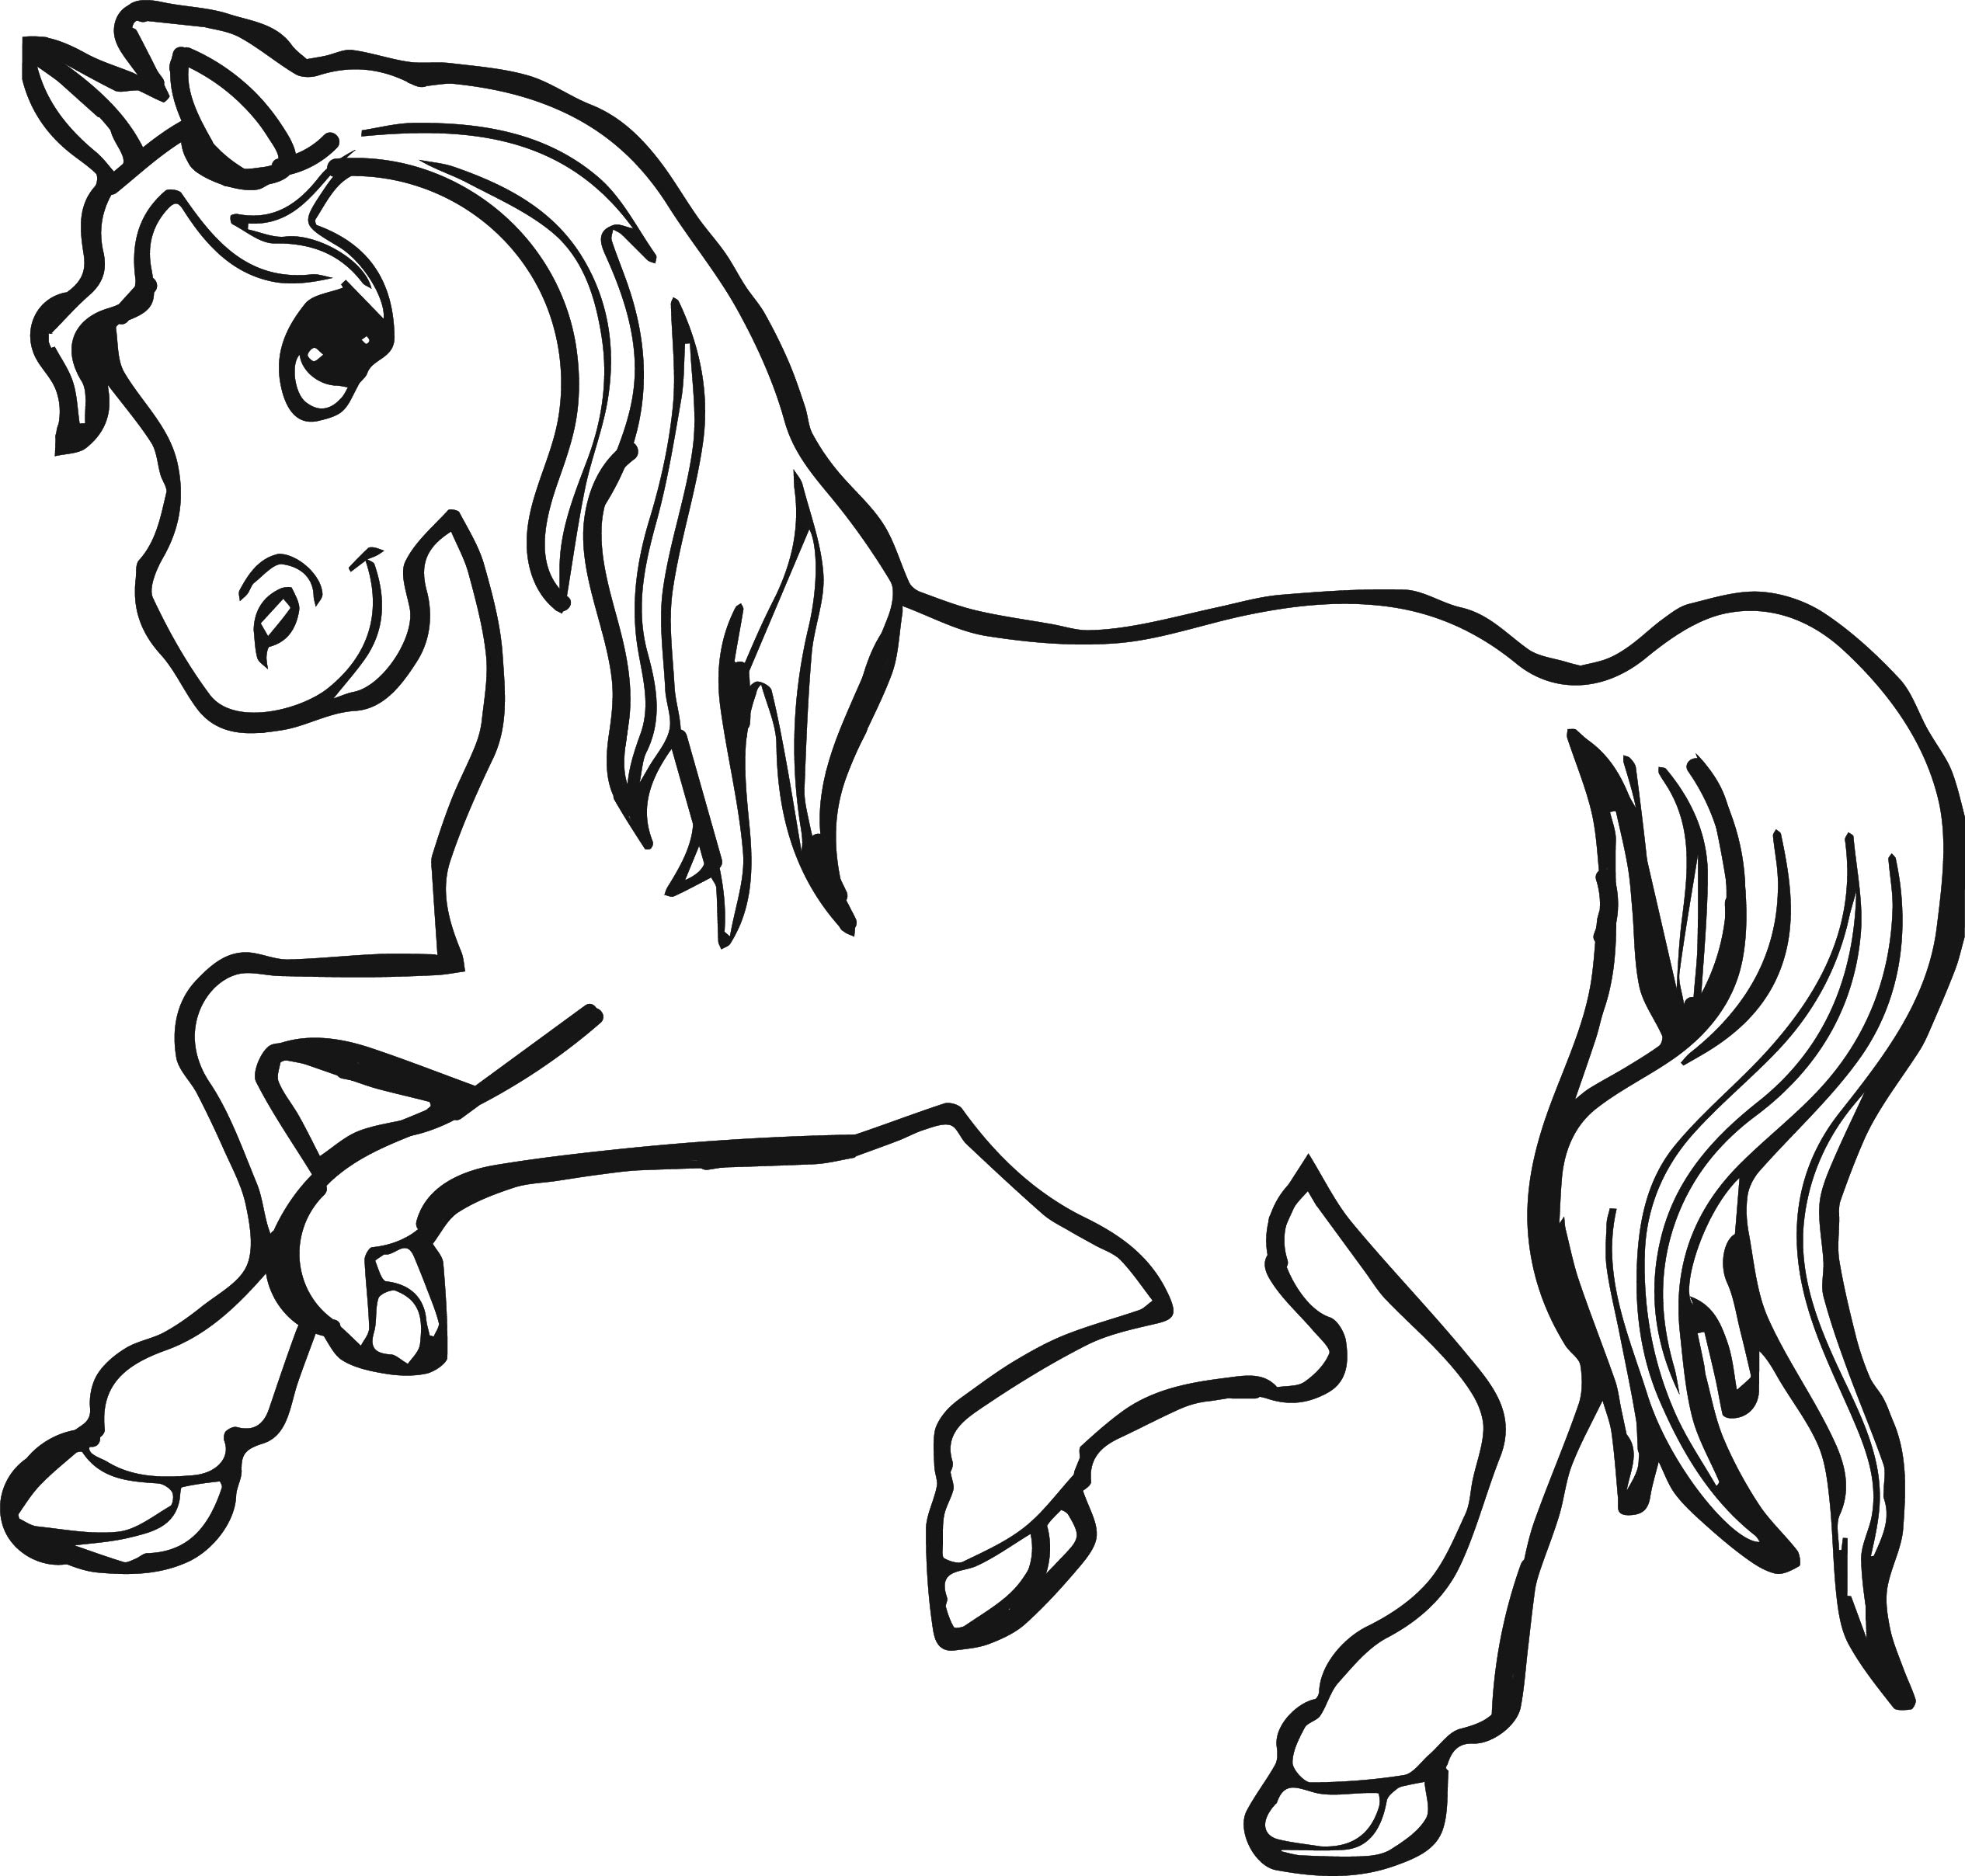 horse coloring picture free horse coloring pages coloring horse picture